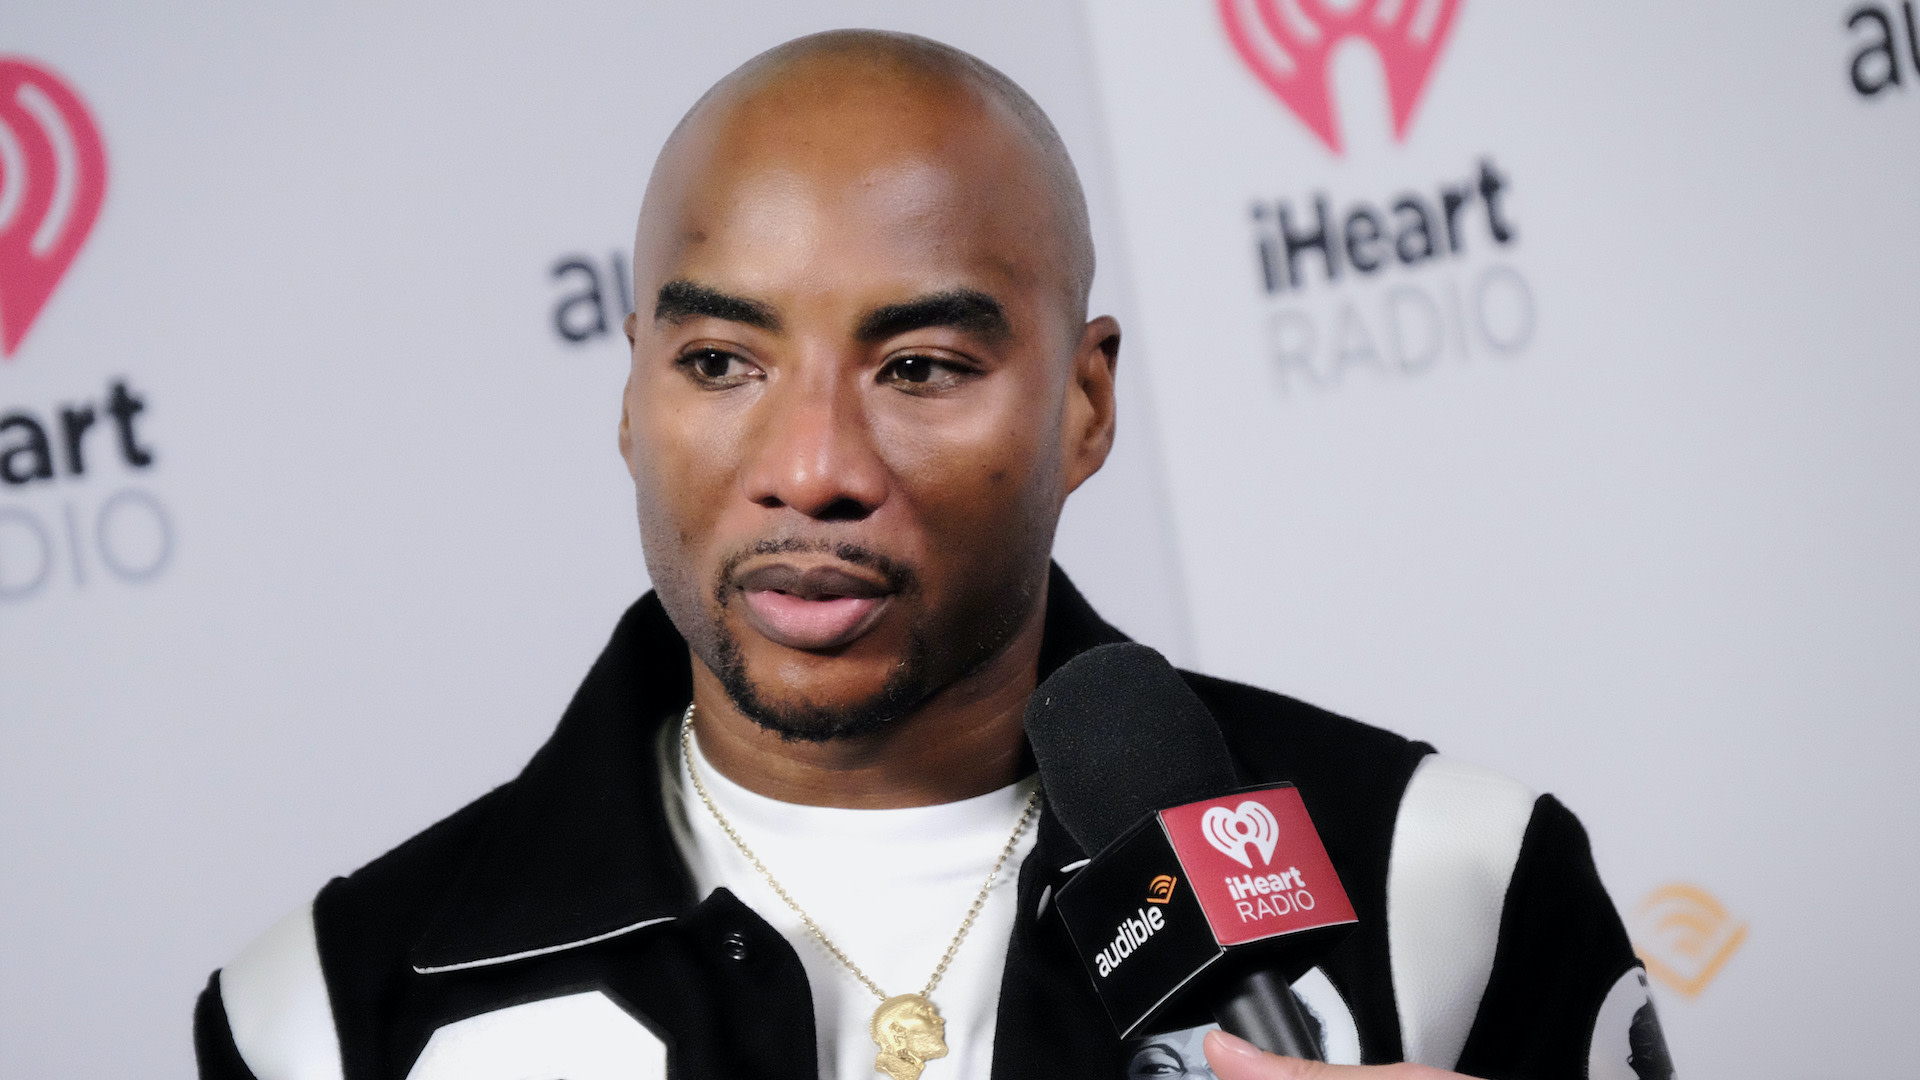 Charlamagne tha God Responds to LaKeith Stanfield Calling Him a 'H**'